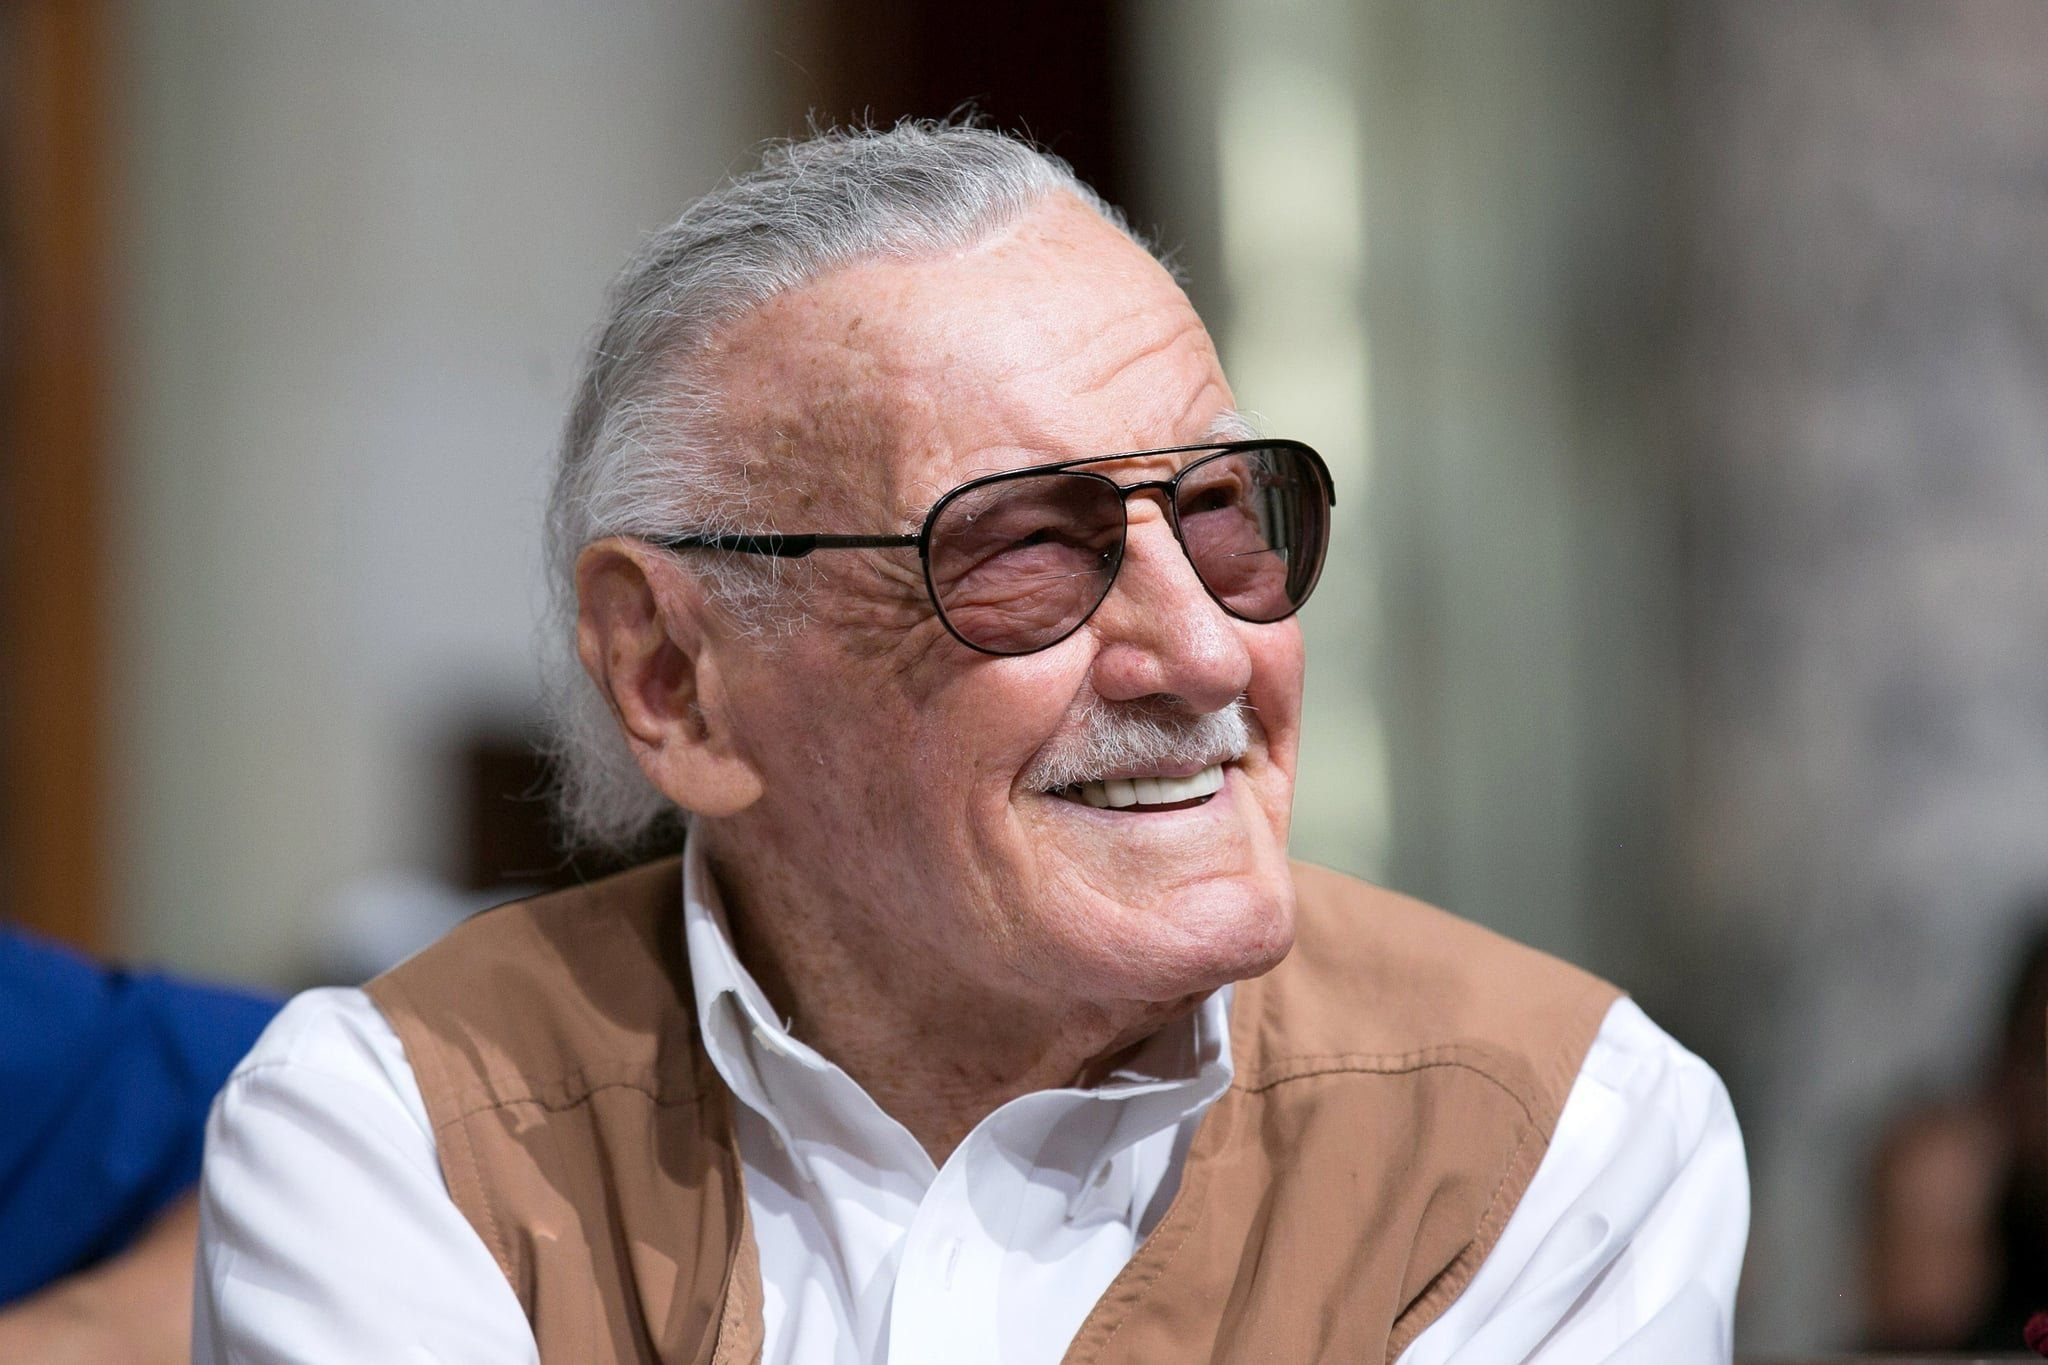 Stan Lee's cause of death has been released two weeks after his passing. According to Stan's death certificate, which was obtained by E!